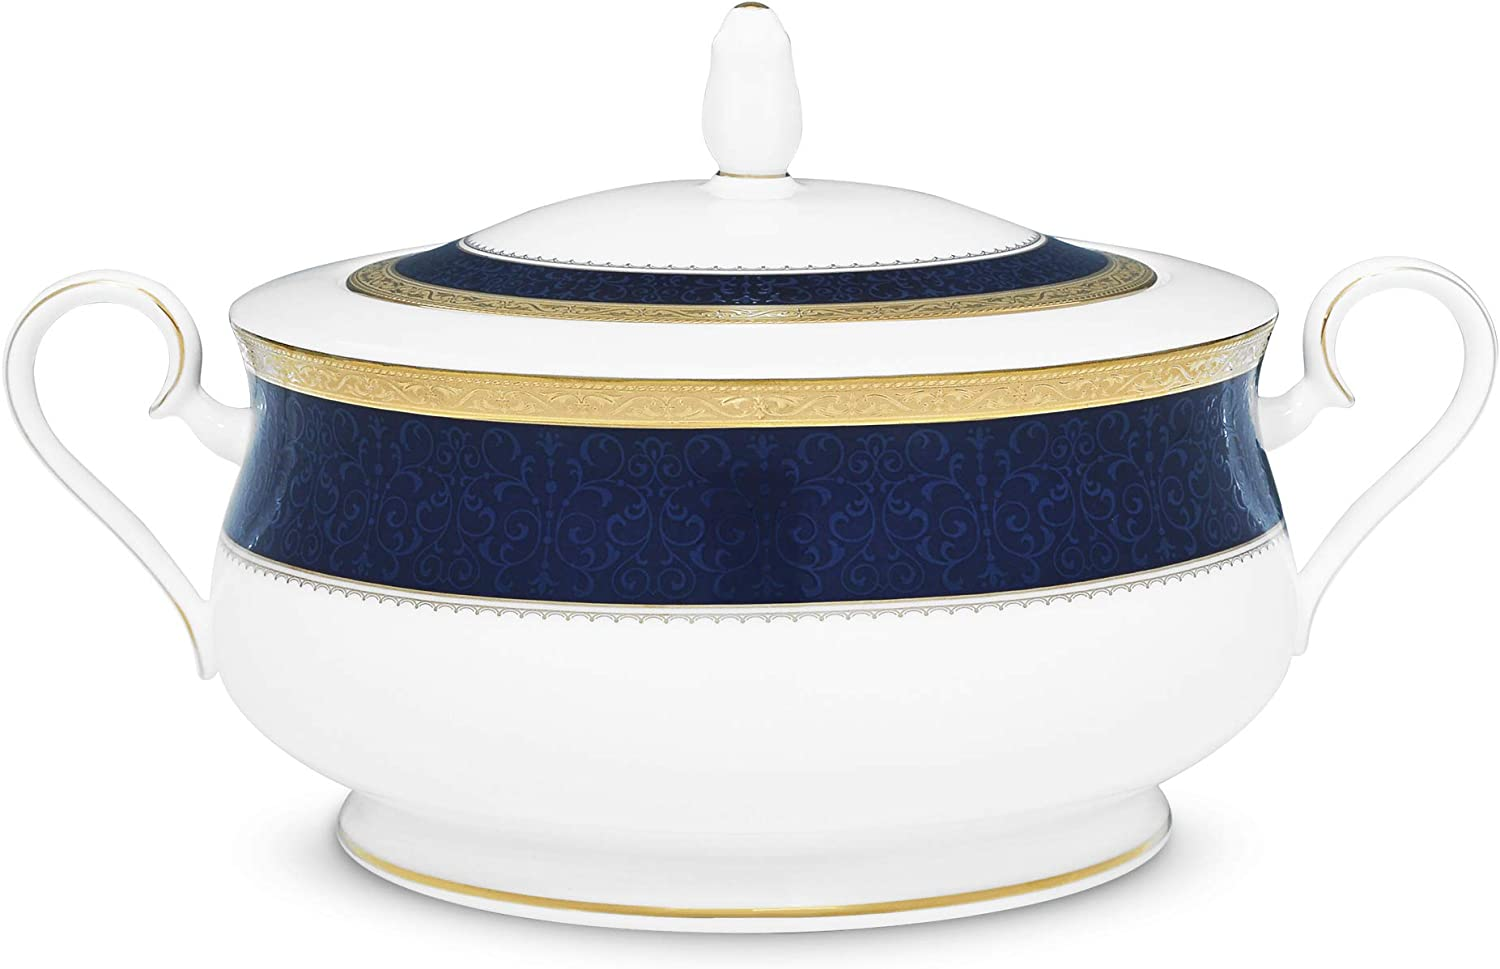 discount Noritake Odessa Cobalt Gold Bowl Covered Vegetable oz Bl 64 in At the price